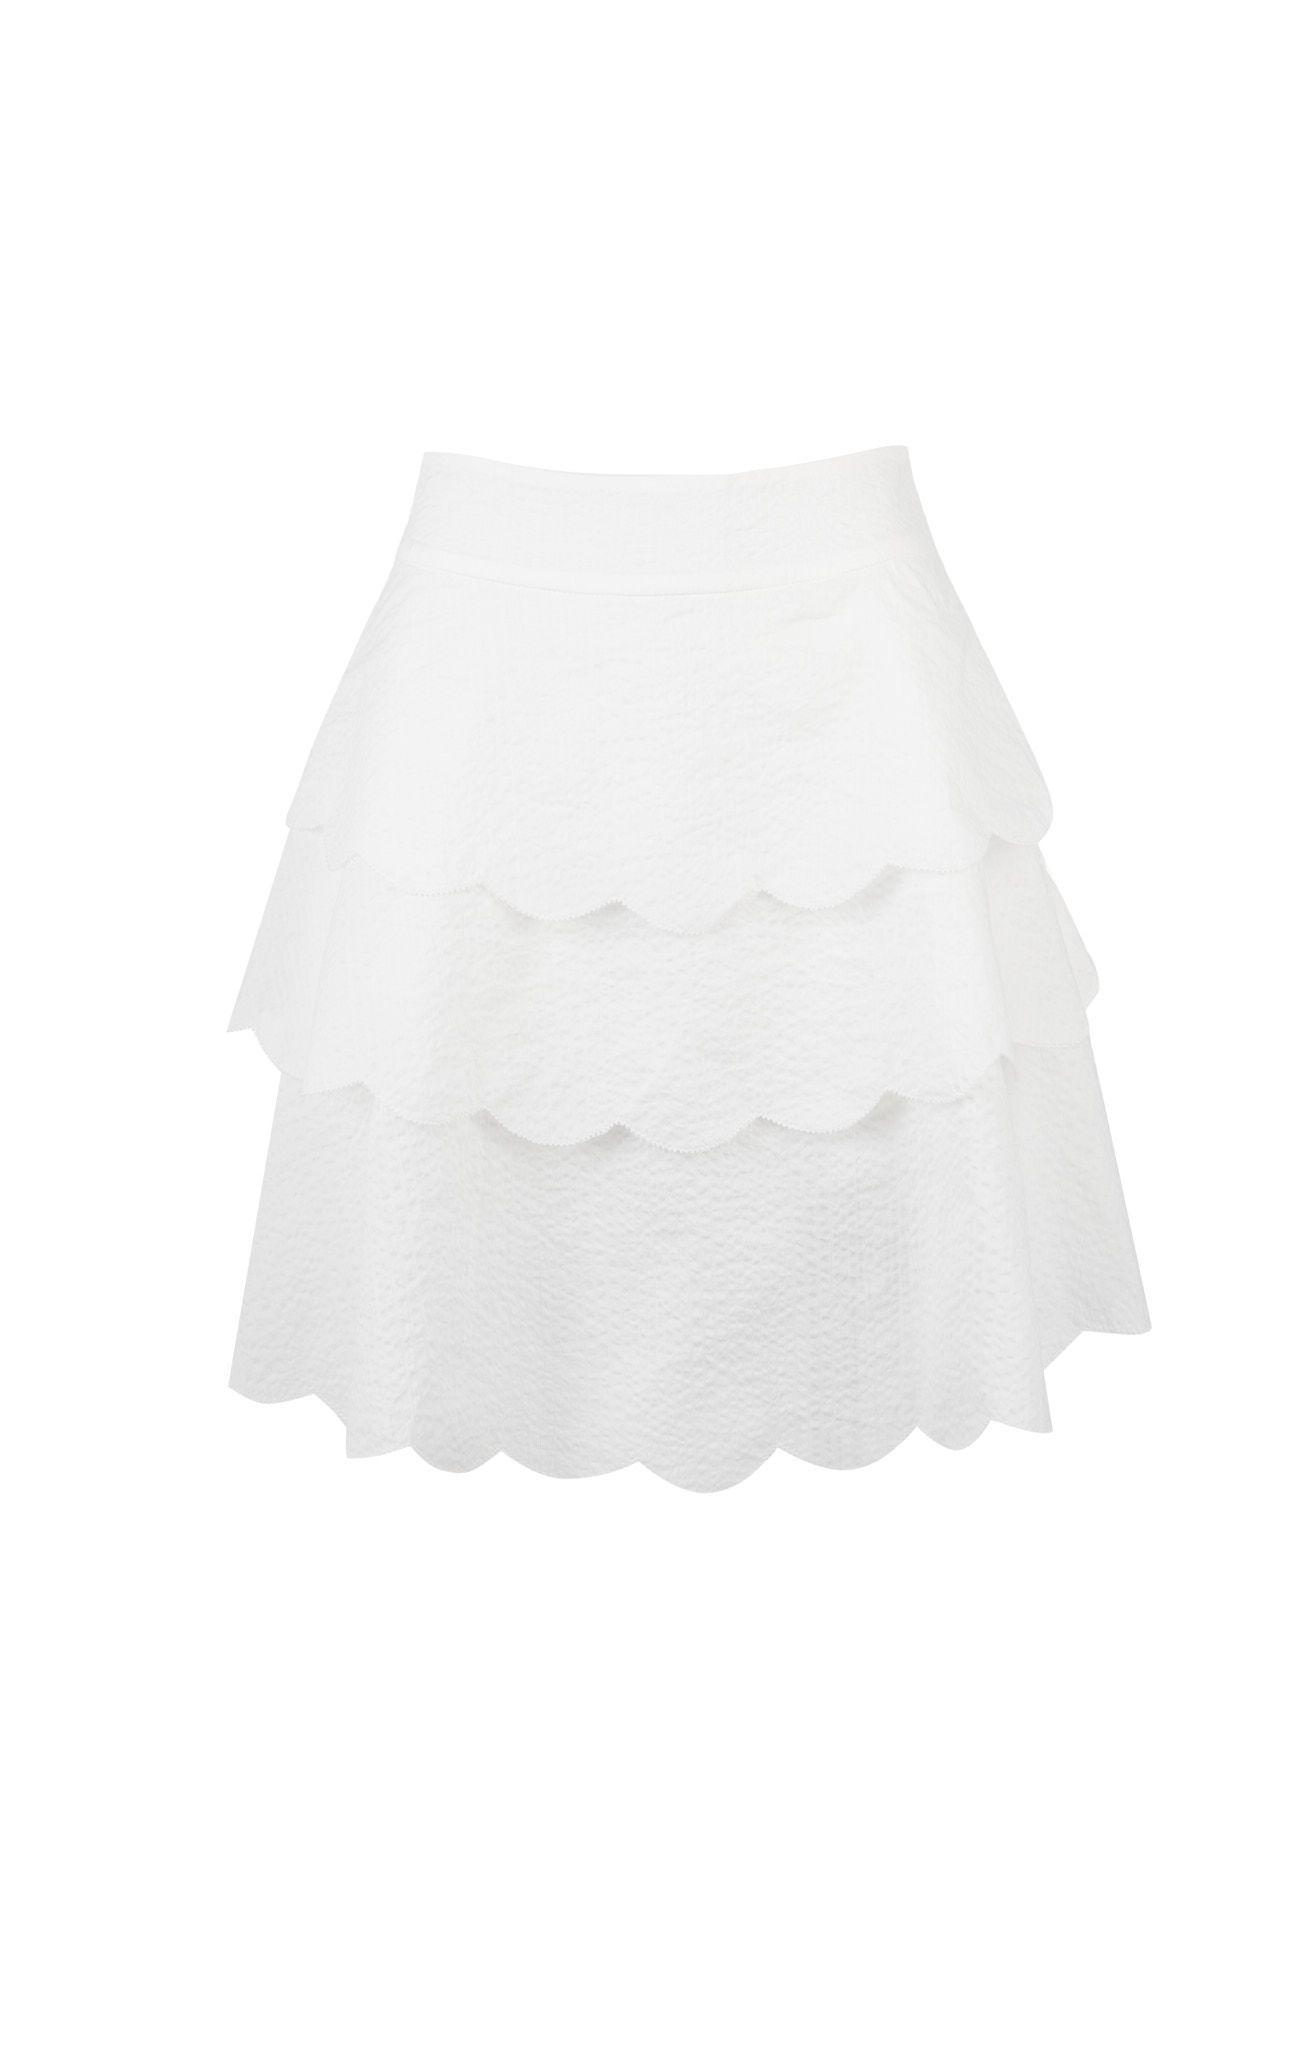 San Onofre Skirt in Coconut 1